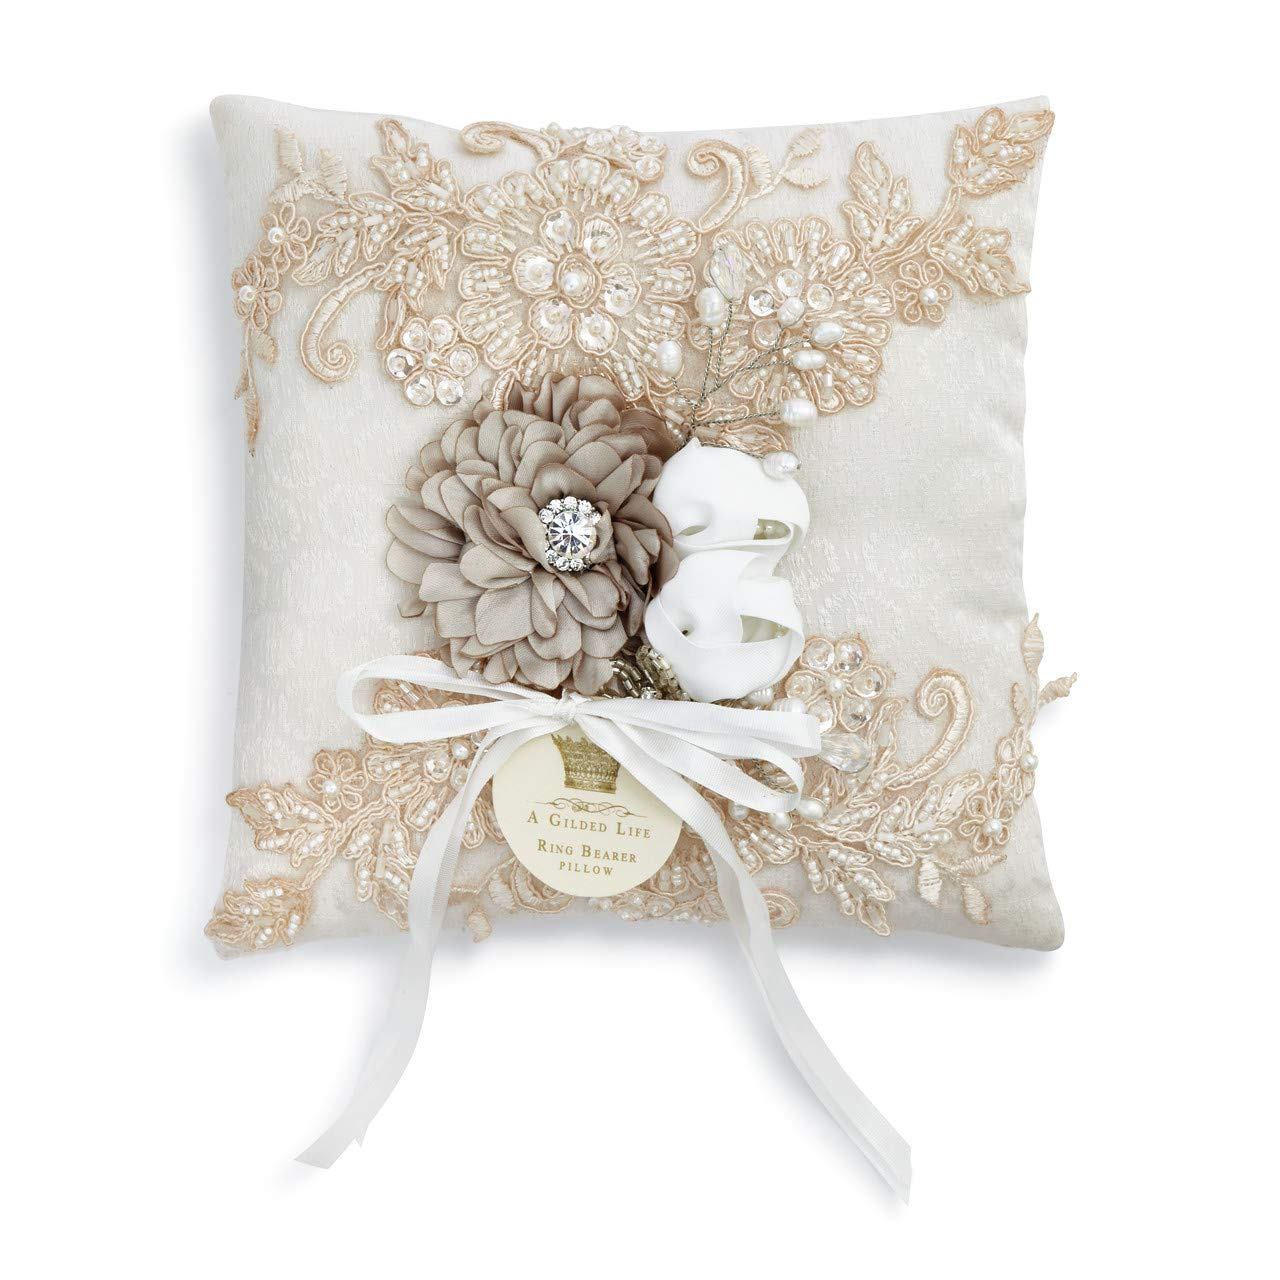 DEMDACO Vintage Lace White 7 x 7 Inch Beaded Polyester Ring Bearer Pillow by DEMDACO